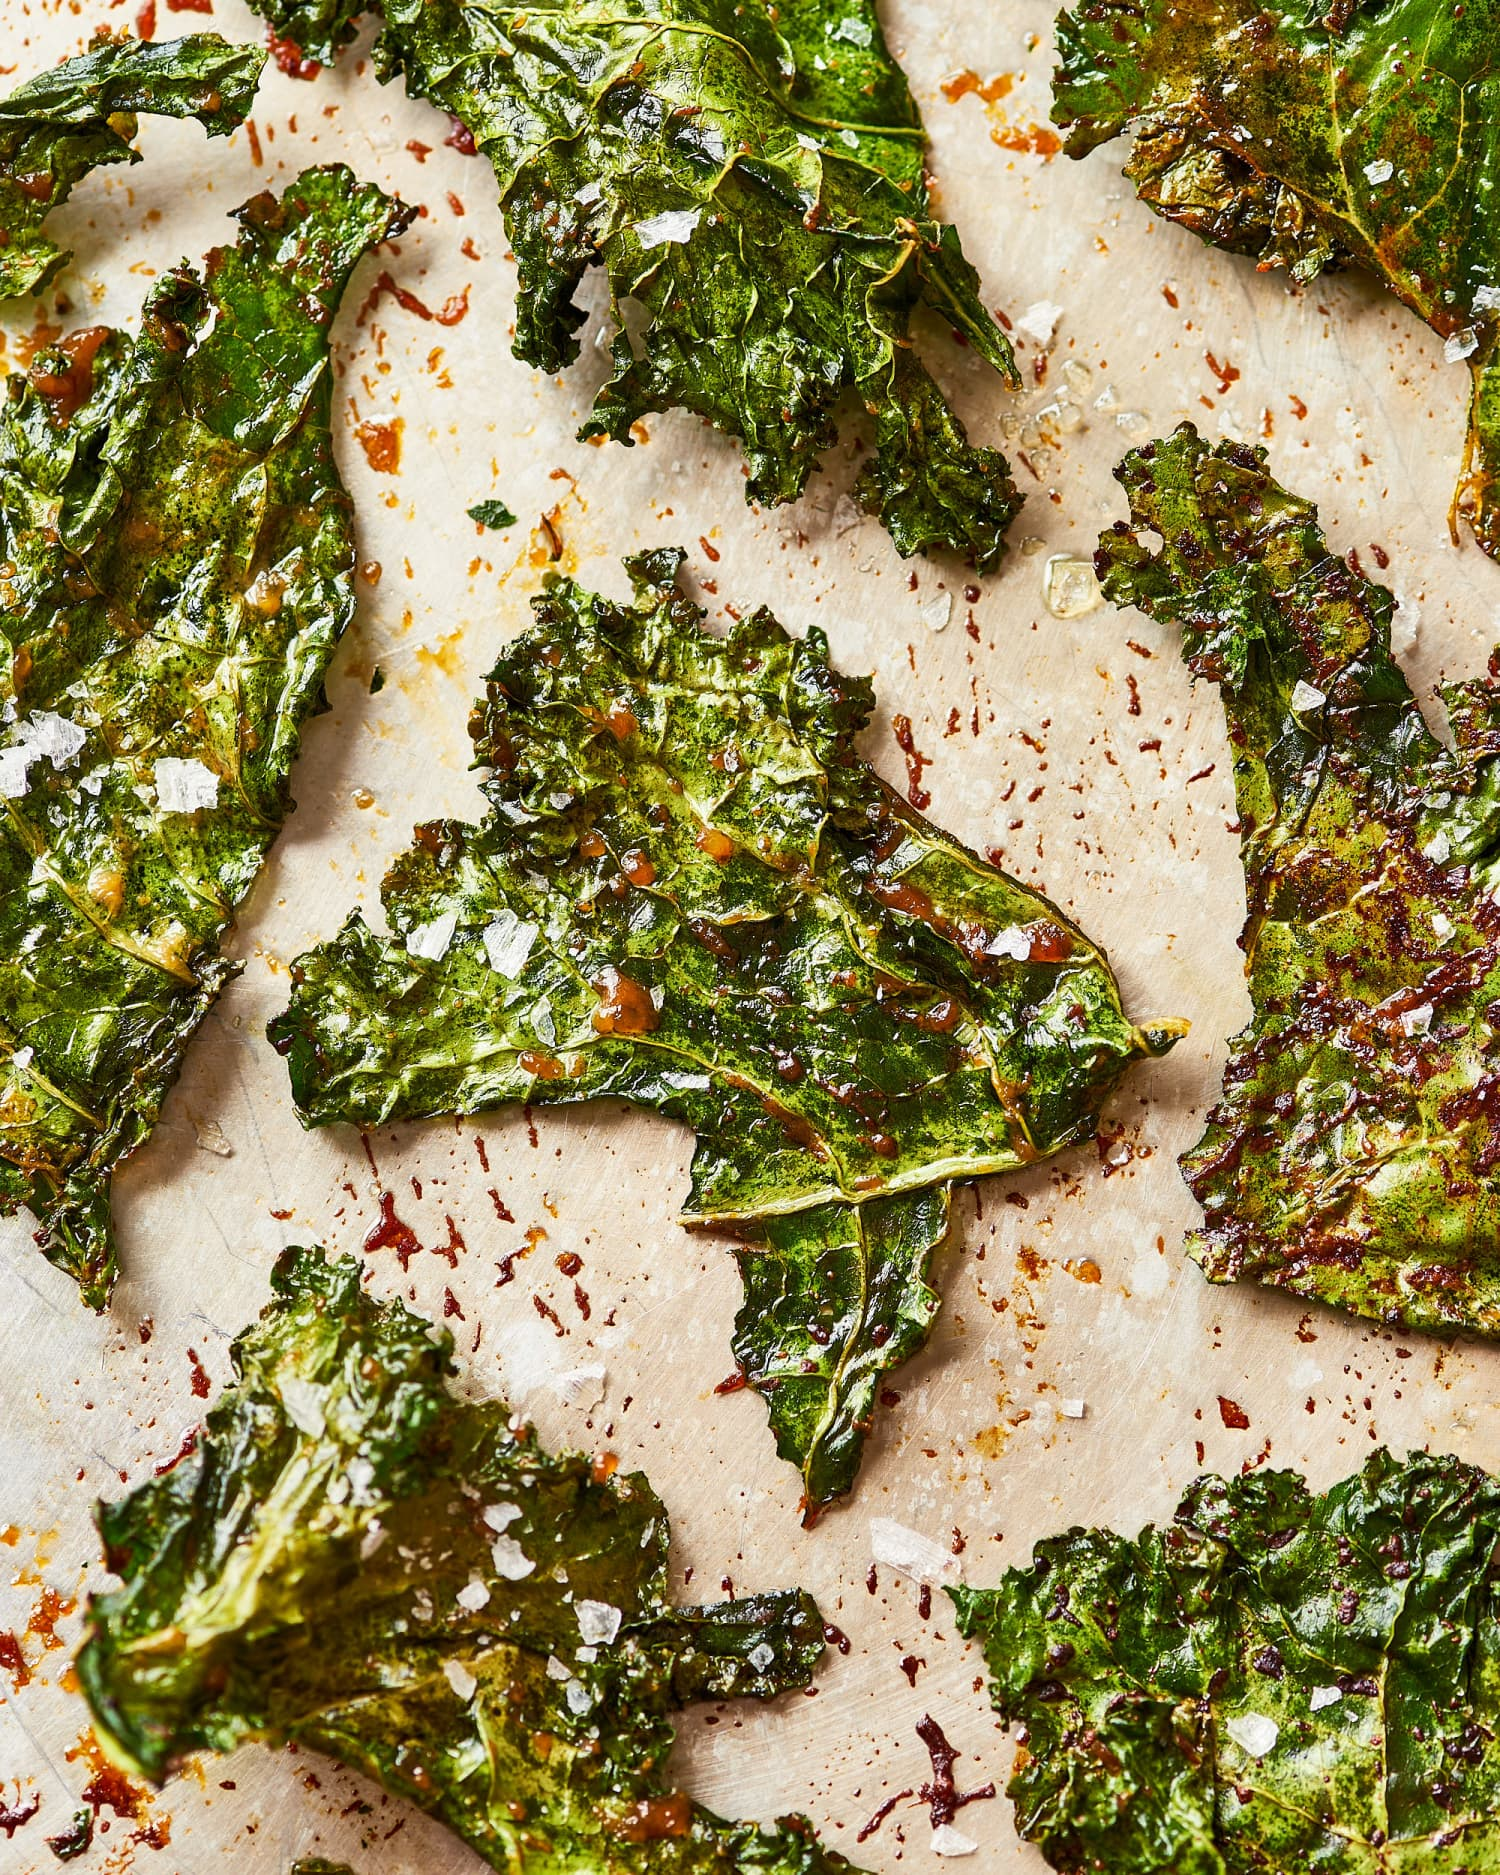 How To Make Kale Chips You Actually Want to Eat